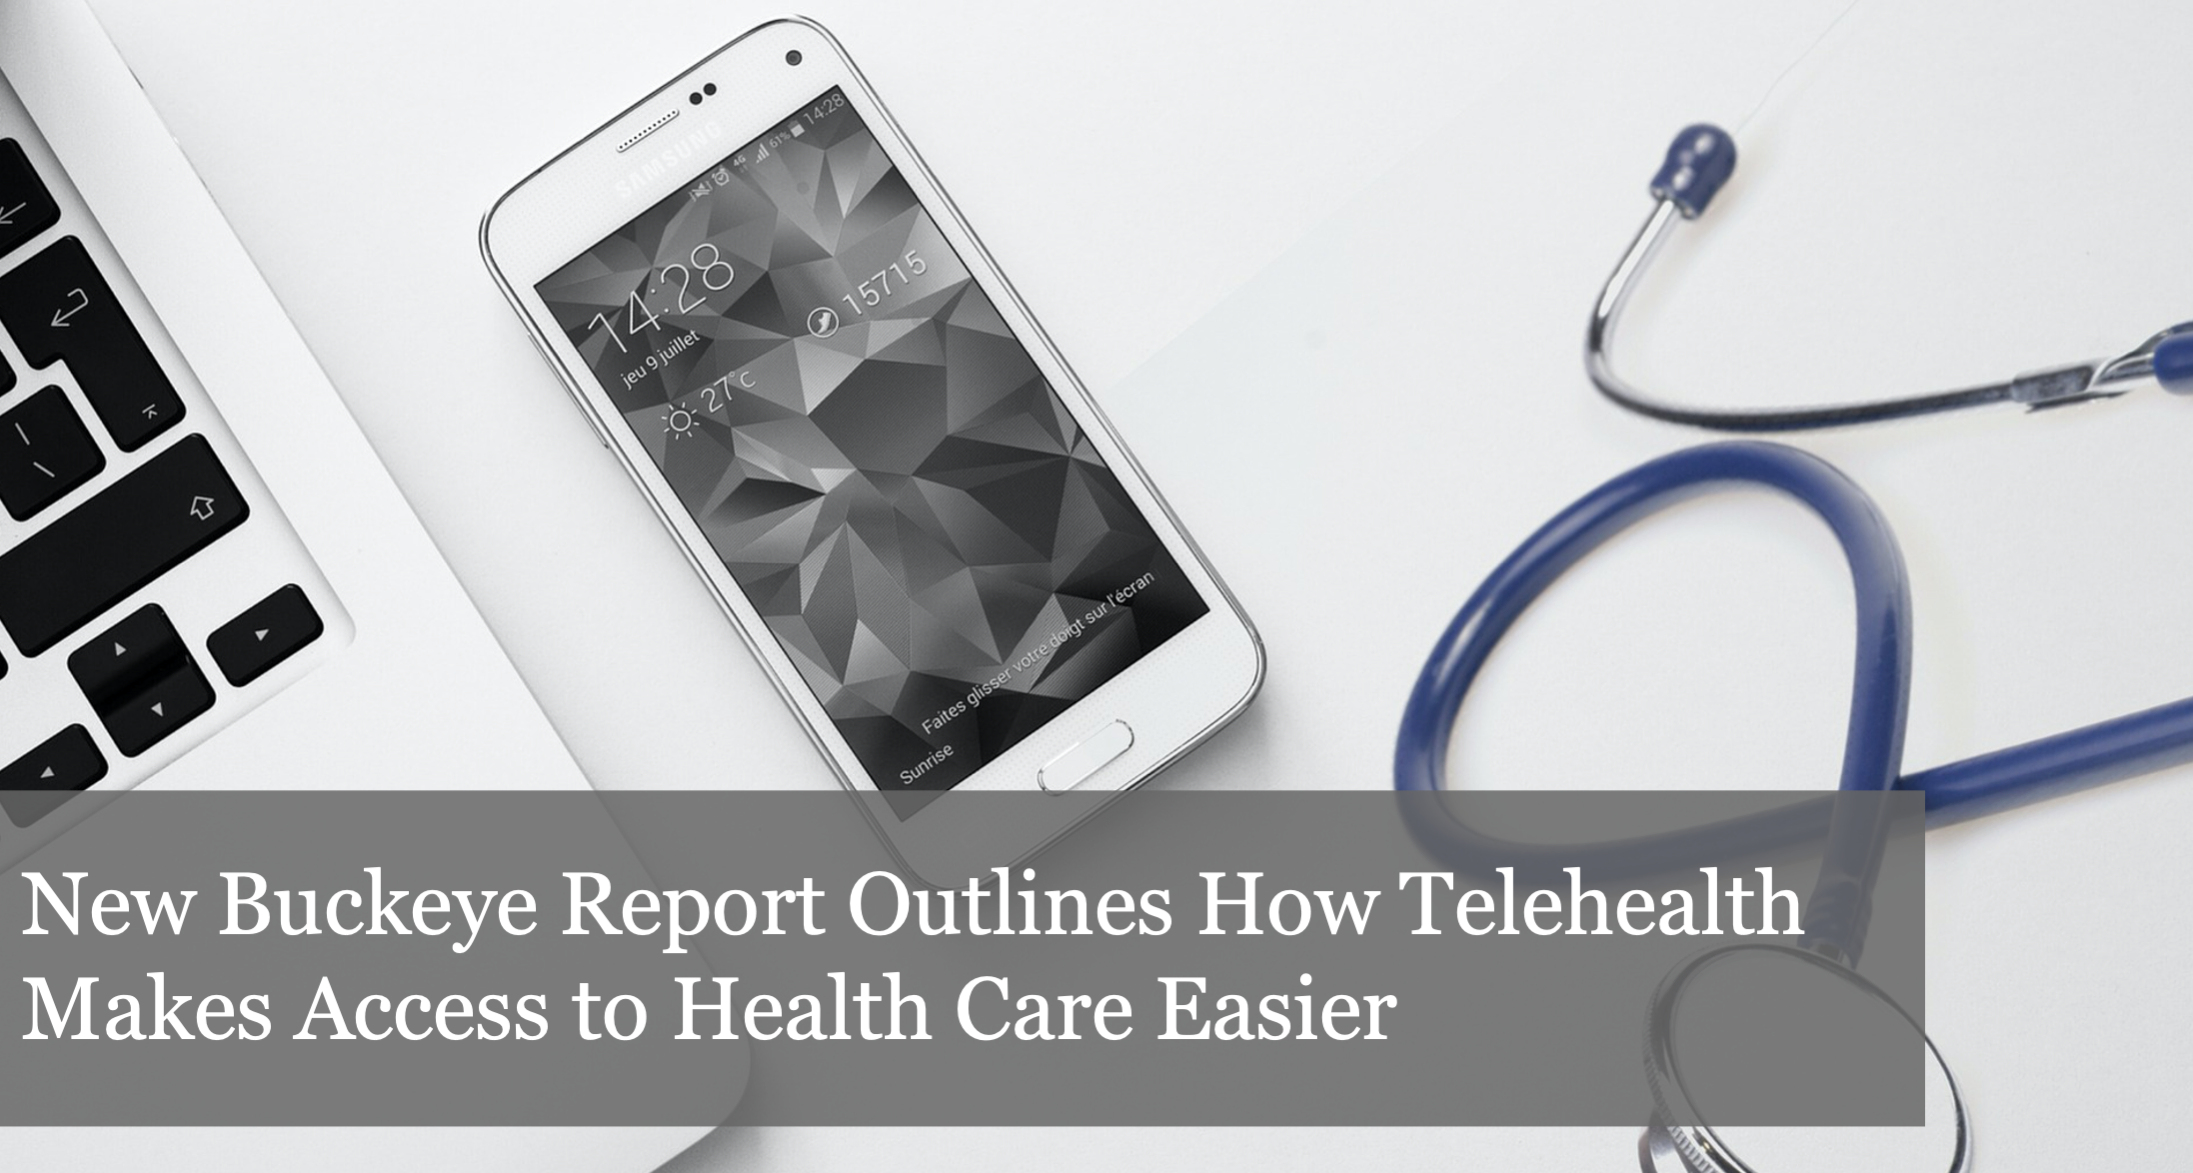 New Buckeye Institute Report Outlines Benefits of Telehealth, Urges Ohio Policymakers to Permanently Expand Access